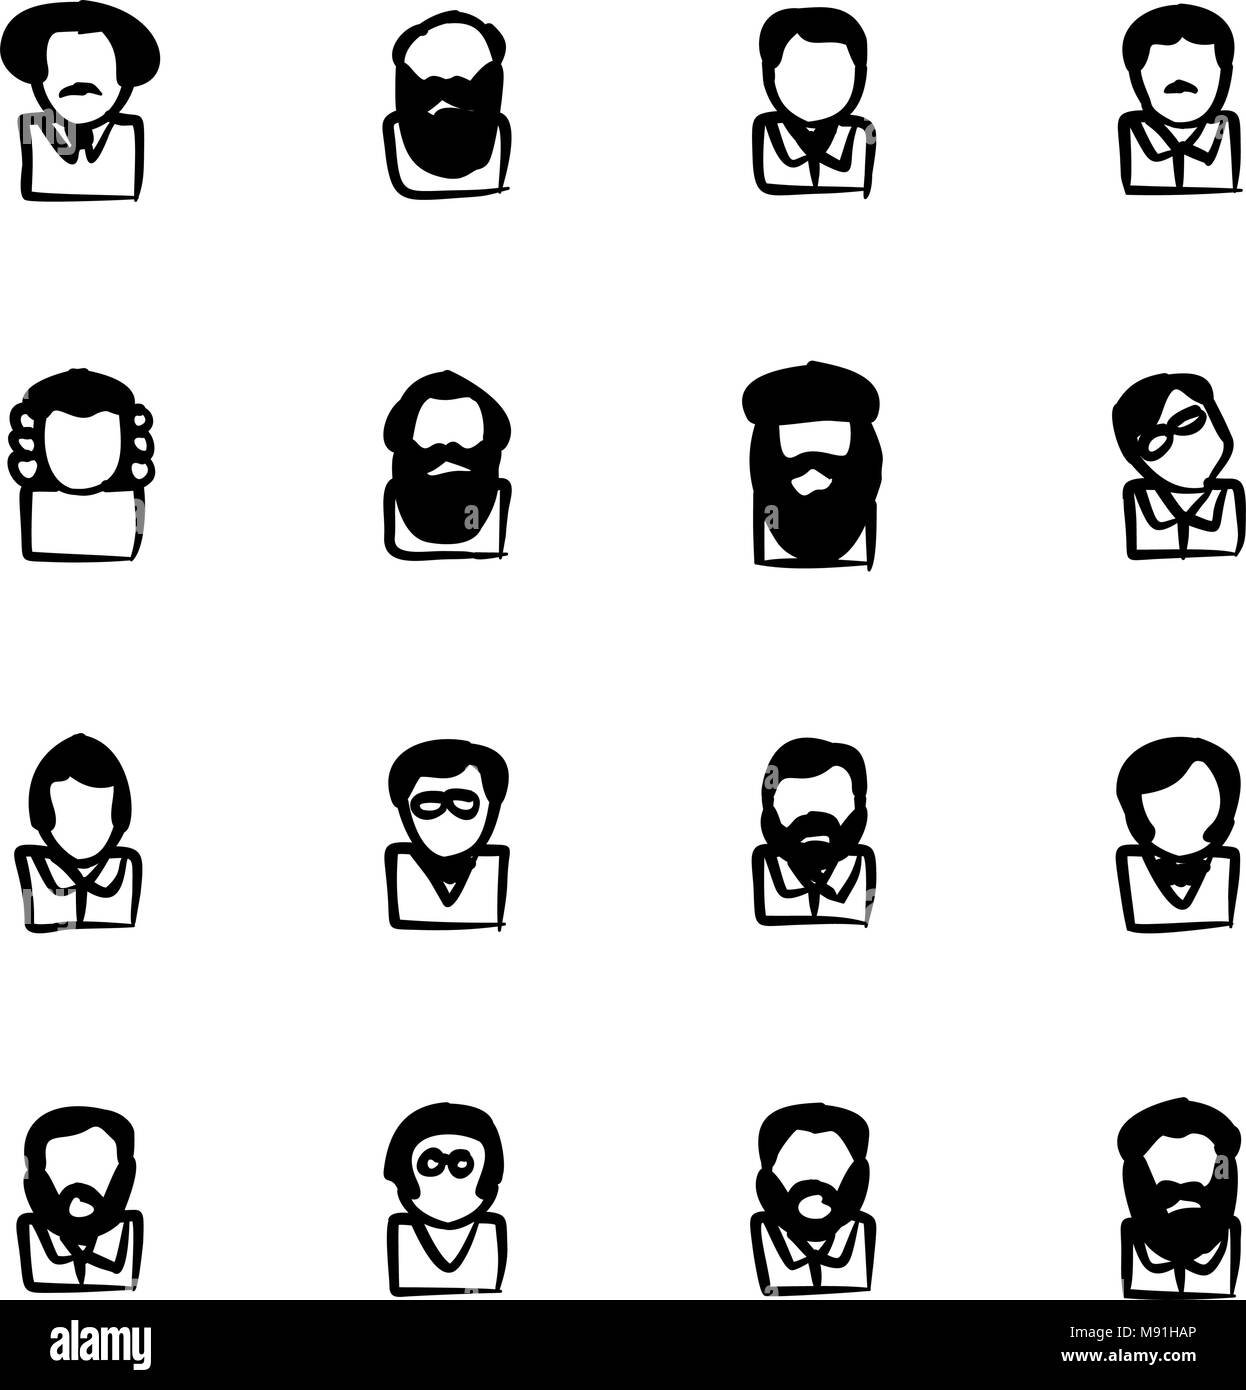 Avatar Icons Famous Scientists Thin Line Vector Illustration Set - Stock Vector